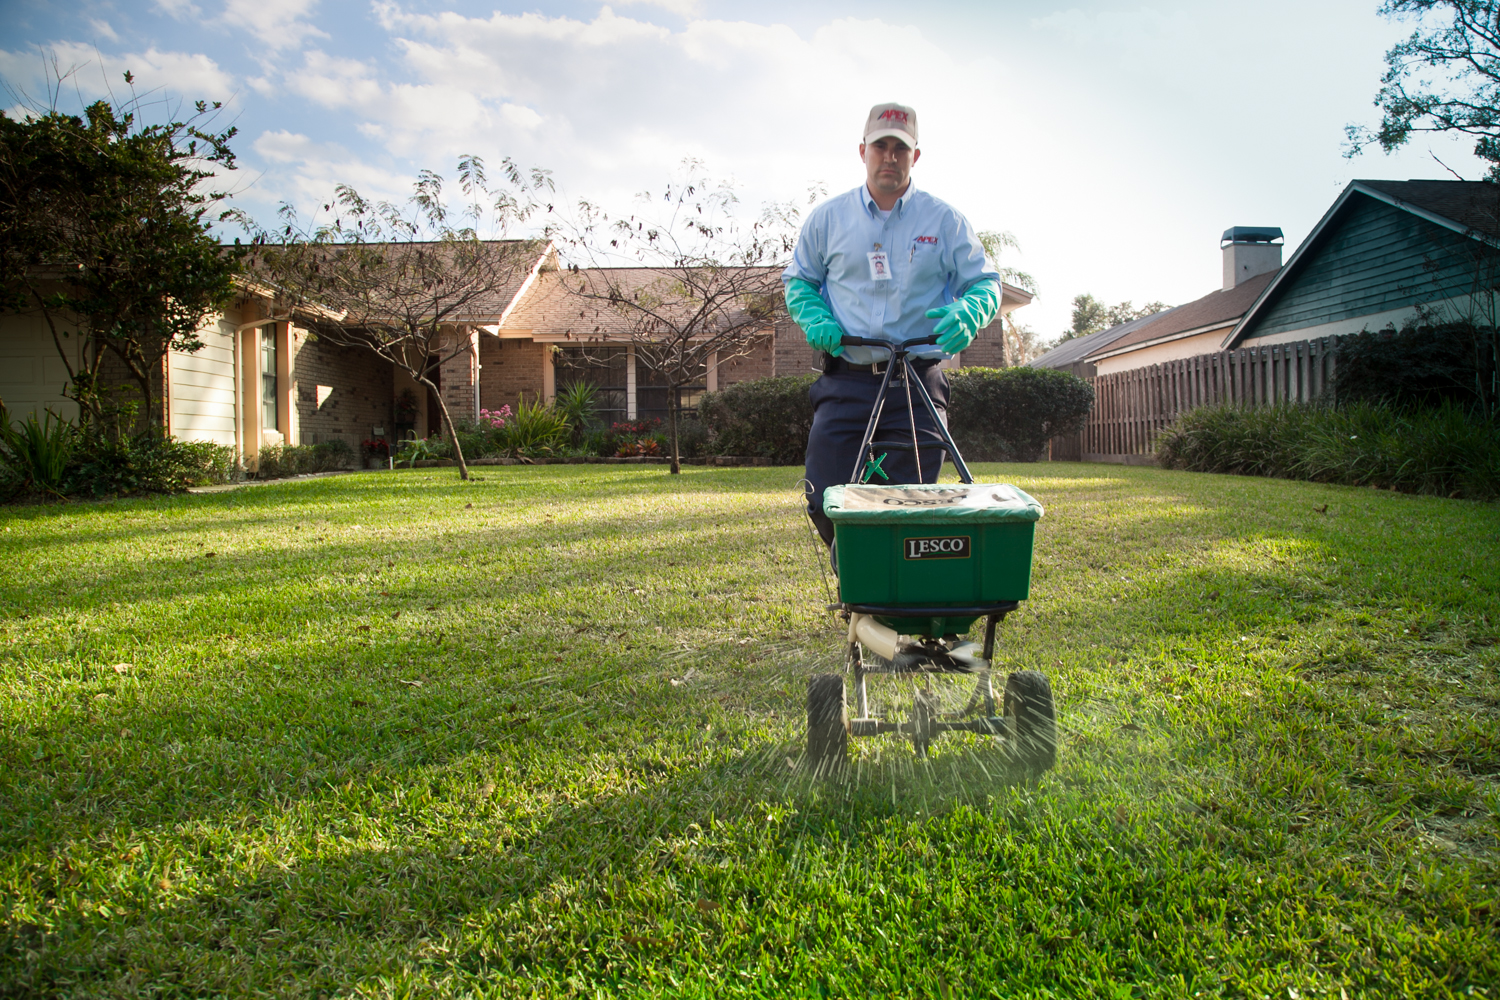 Orlando Lawn Care Information For Your St Augustine Lawn